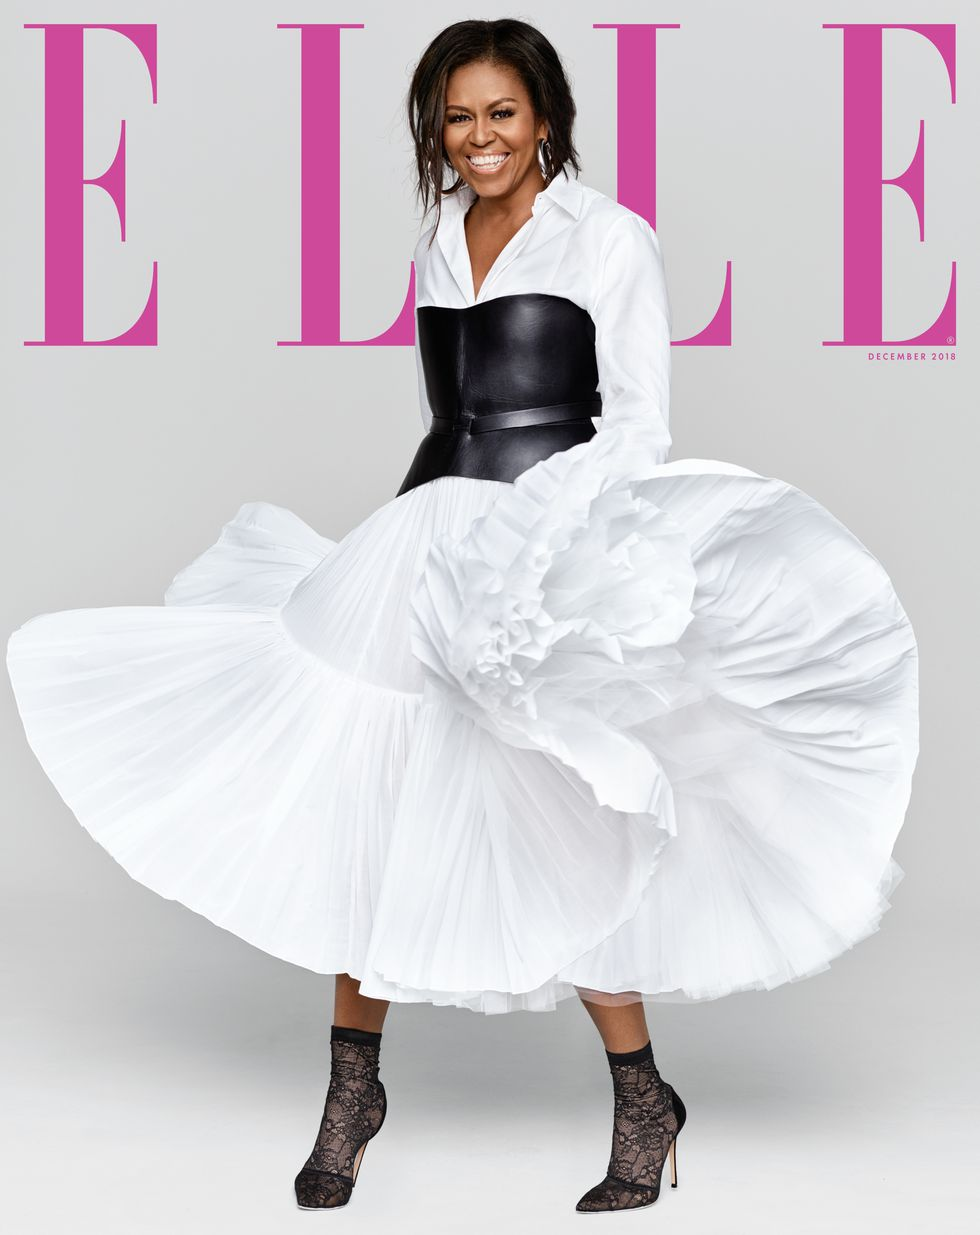 Watch - Look come at michelle obamas vogue cover video